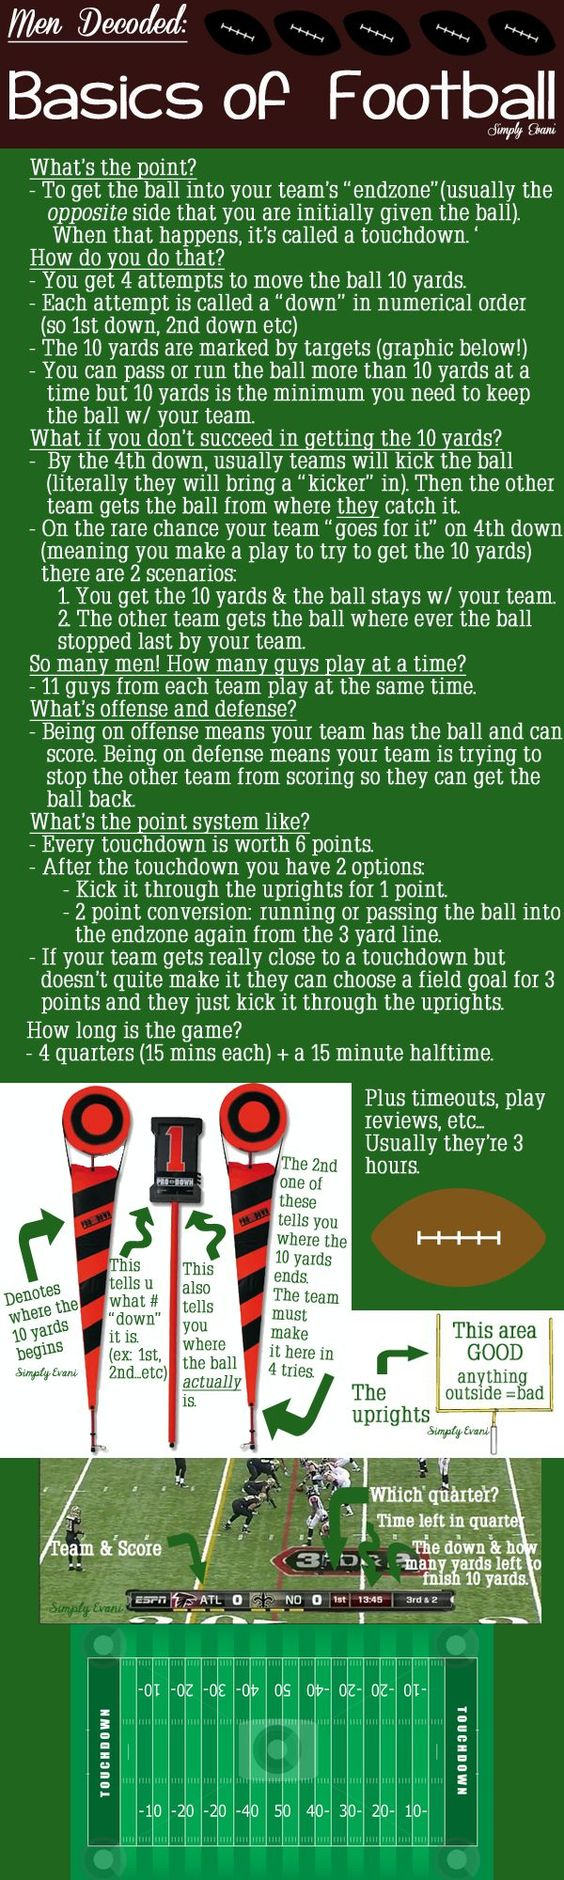 Need some basic football knowledge? Here's a breakdown of the Basics of Football on my blog Simply Evani!